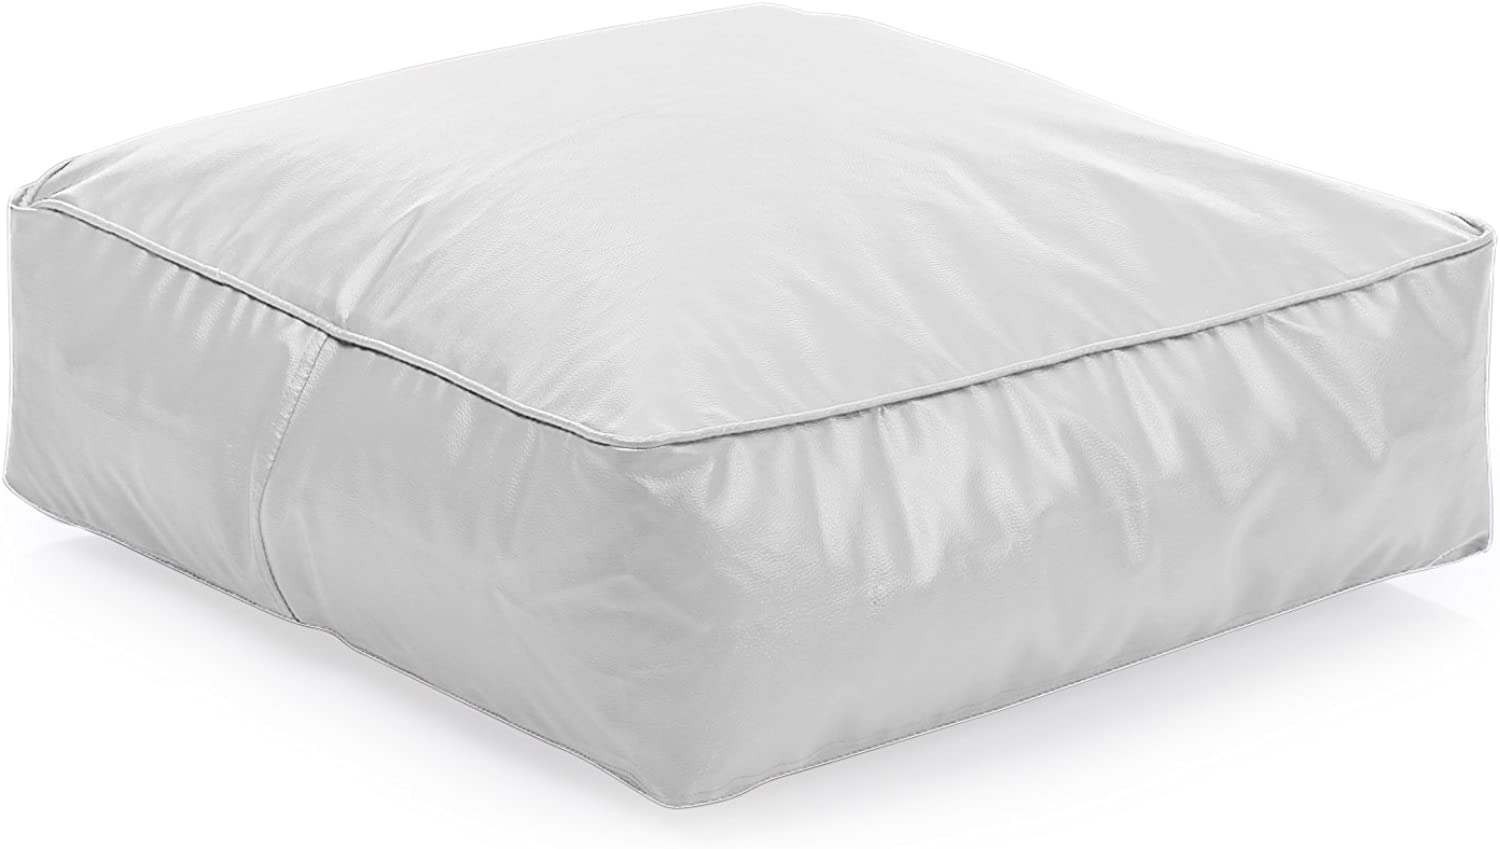 Style Homez Classic Square Floor Cushion L size Elegant White color Cover Only